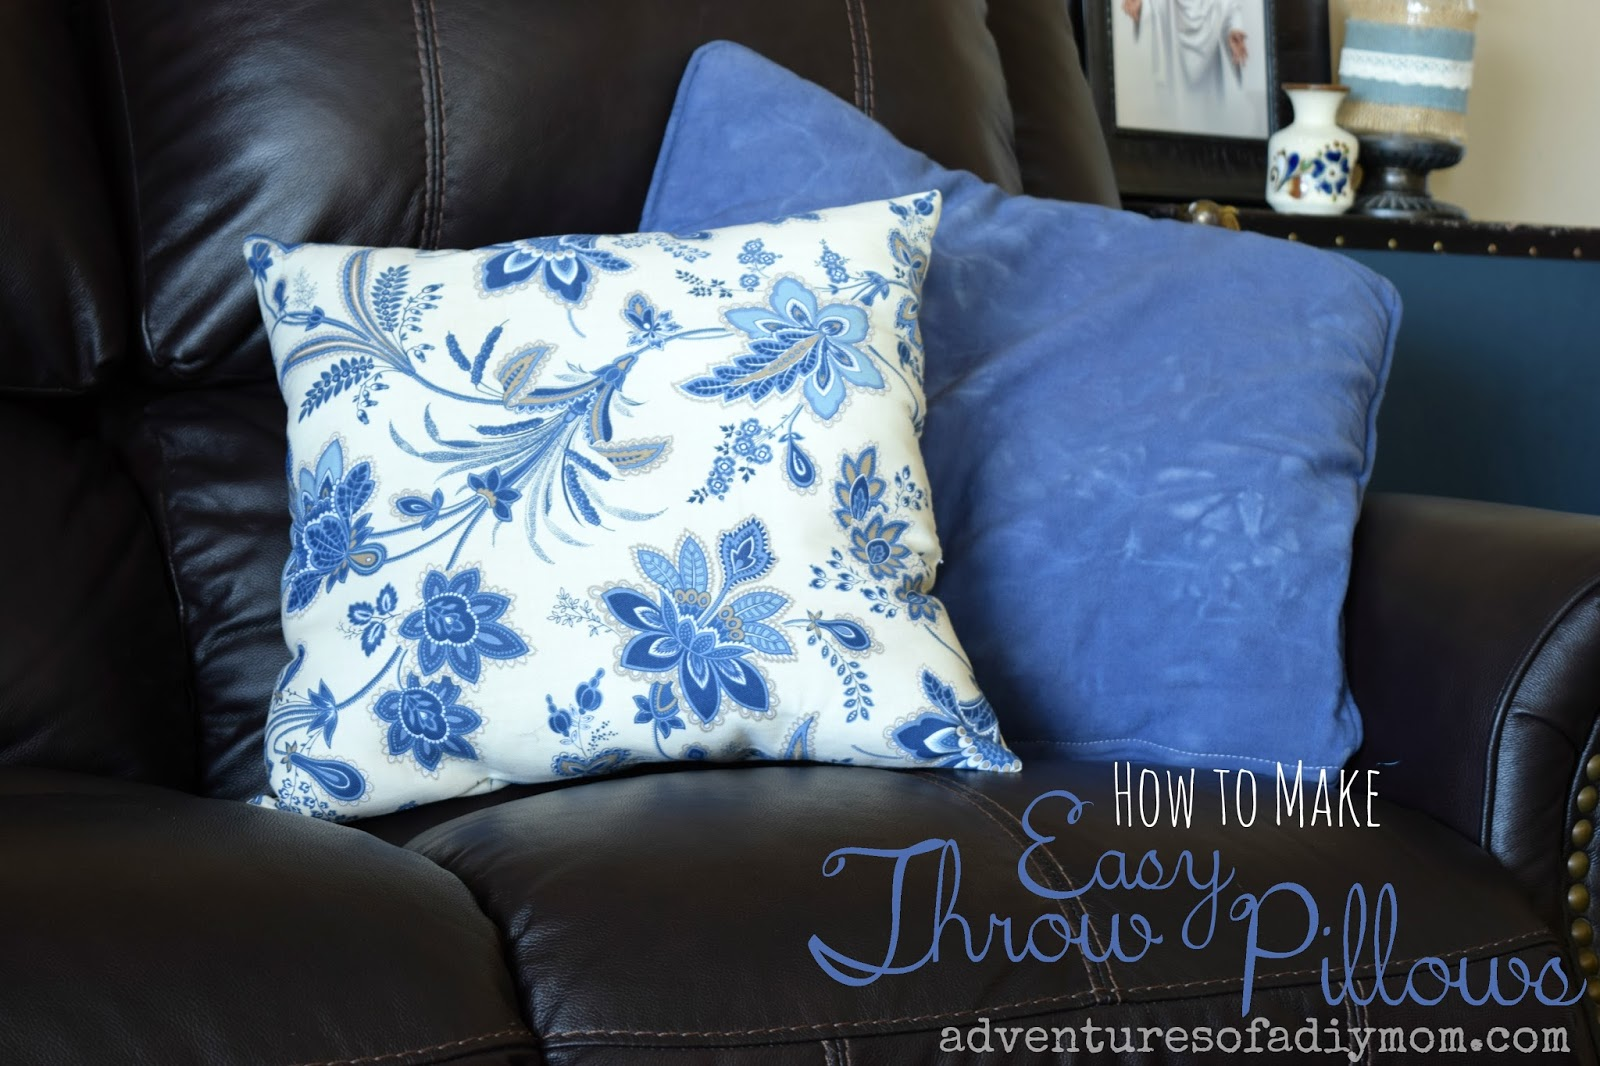 How To Make A Simple Decorative Pillow : How to Make Easy Throw Pillows - Adventures of a DIY Mom